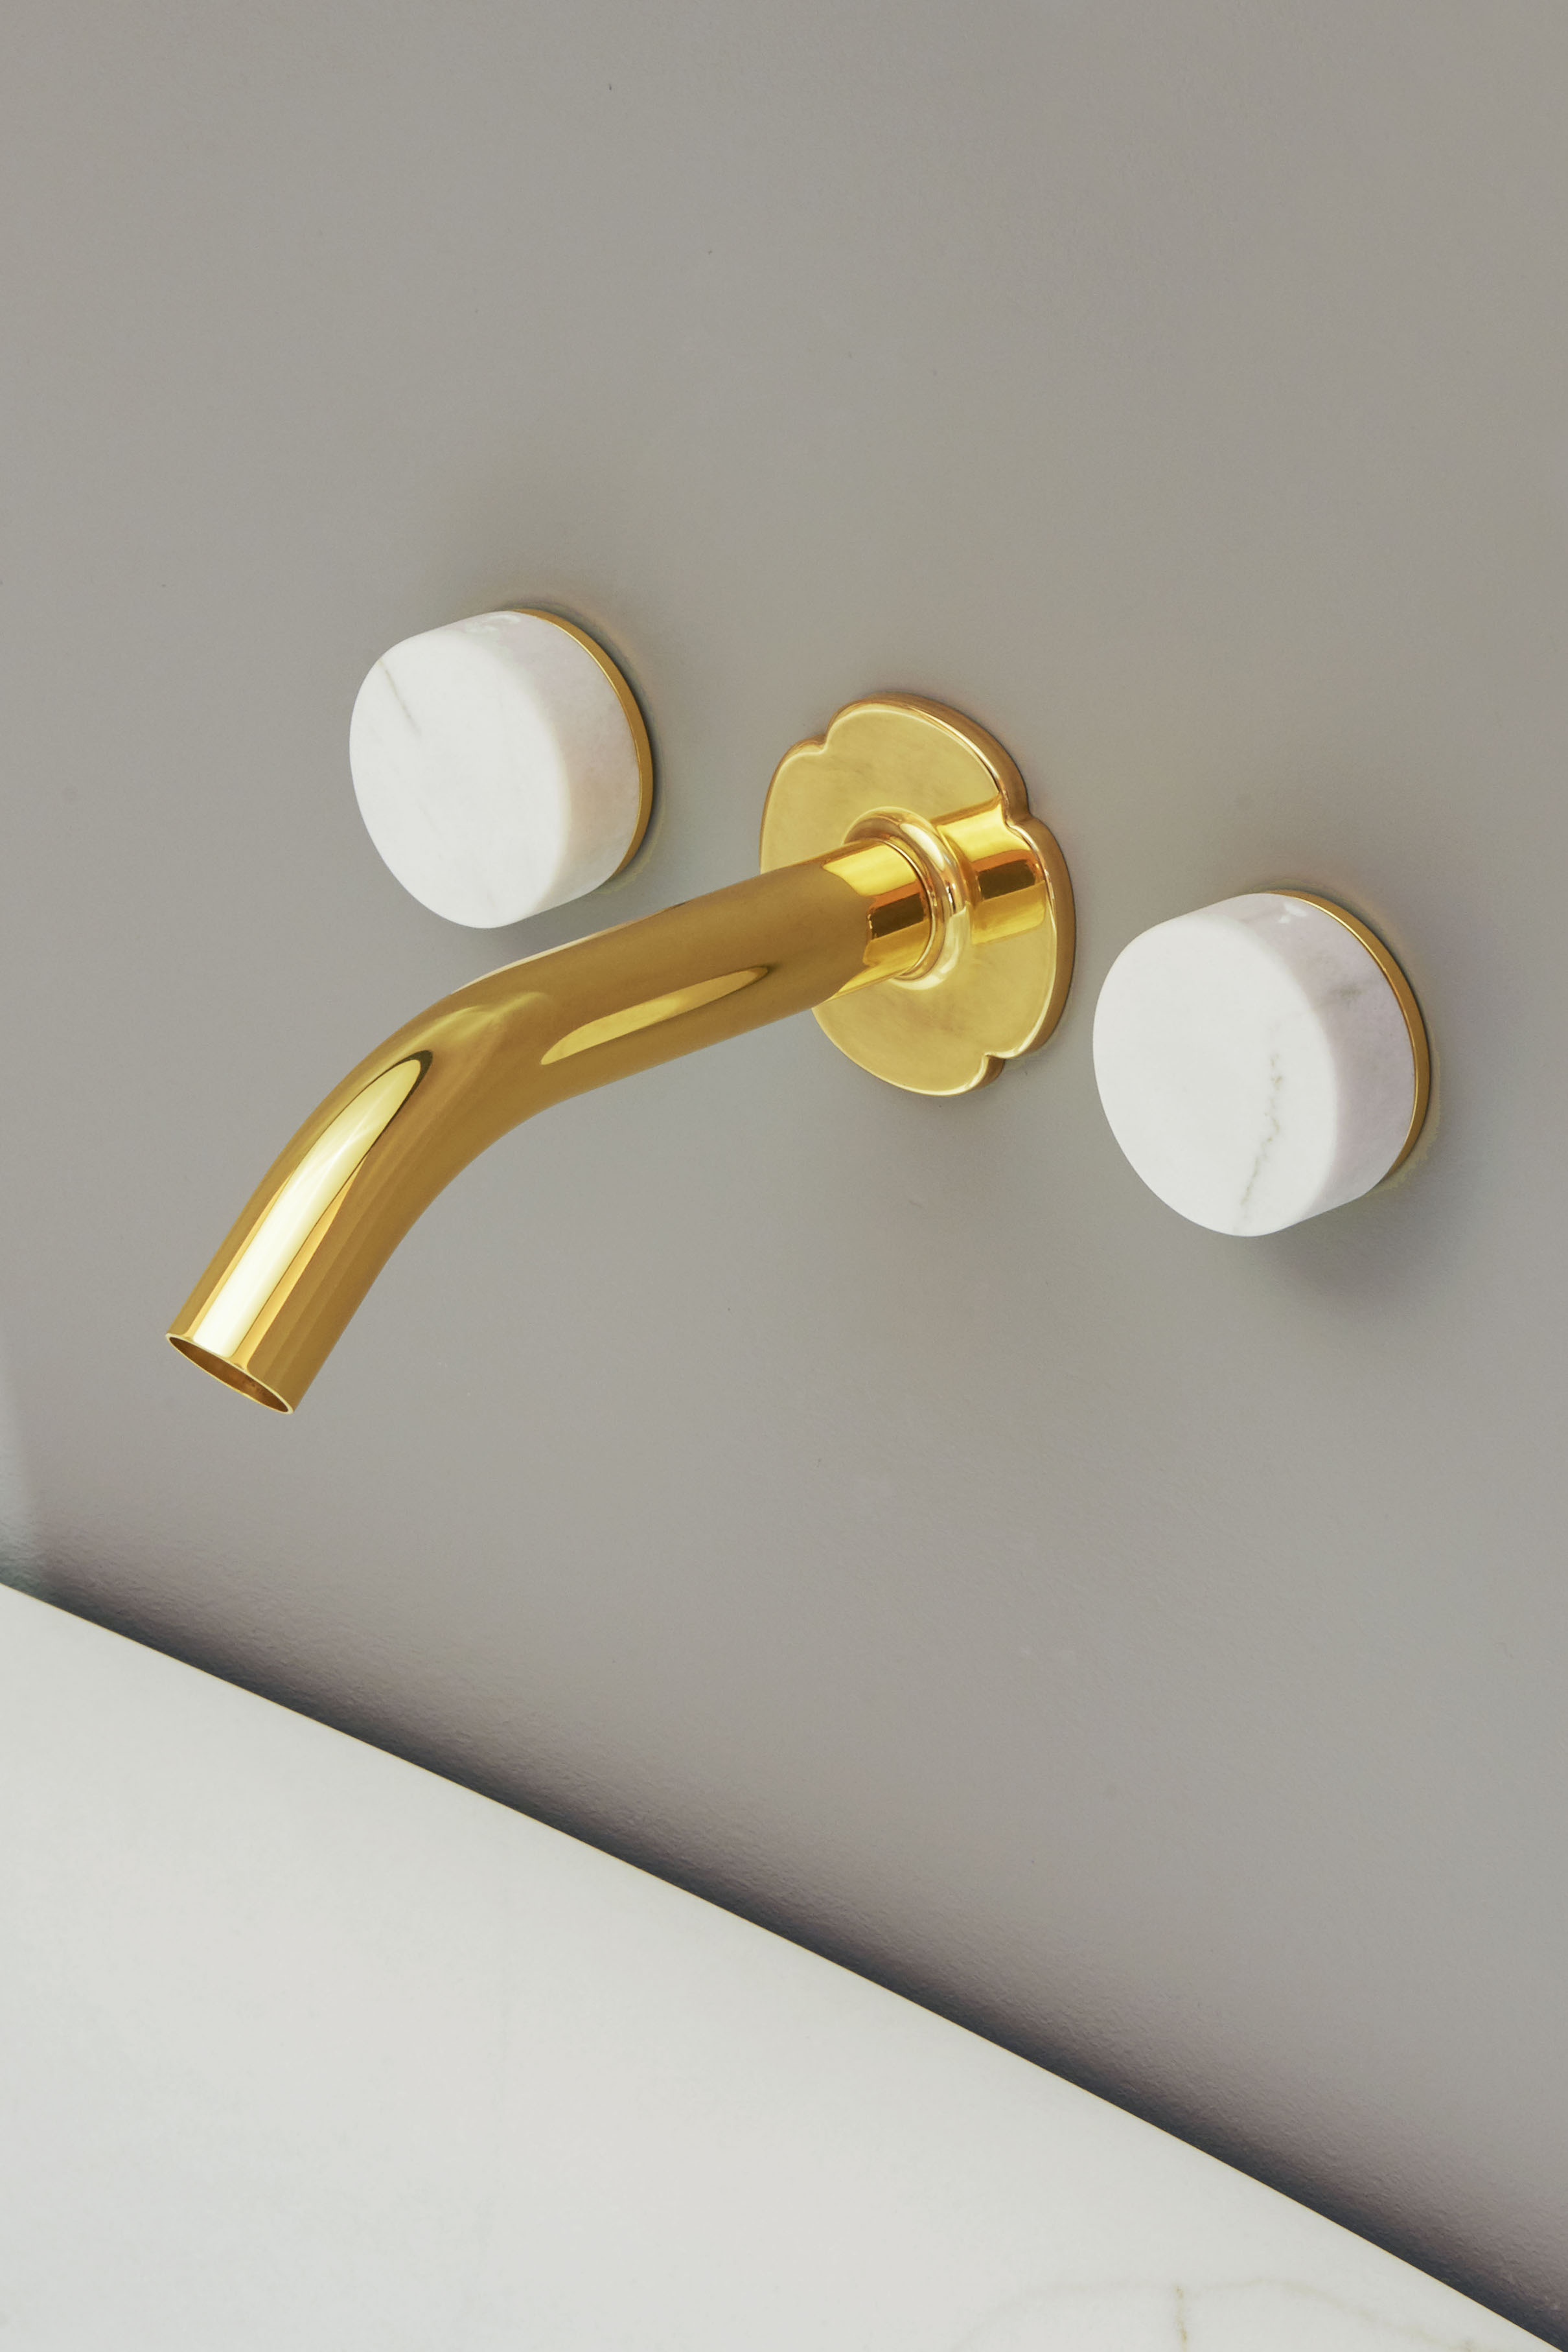 Bath mixer - in marble and brass